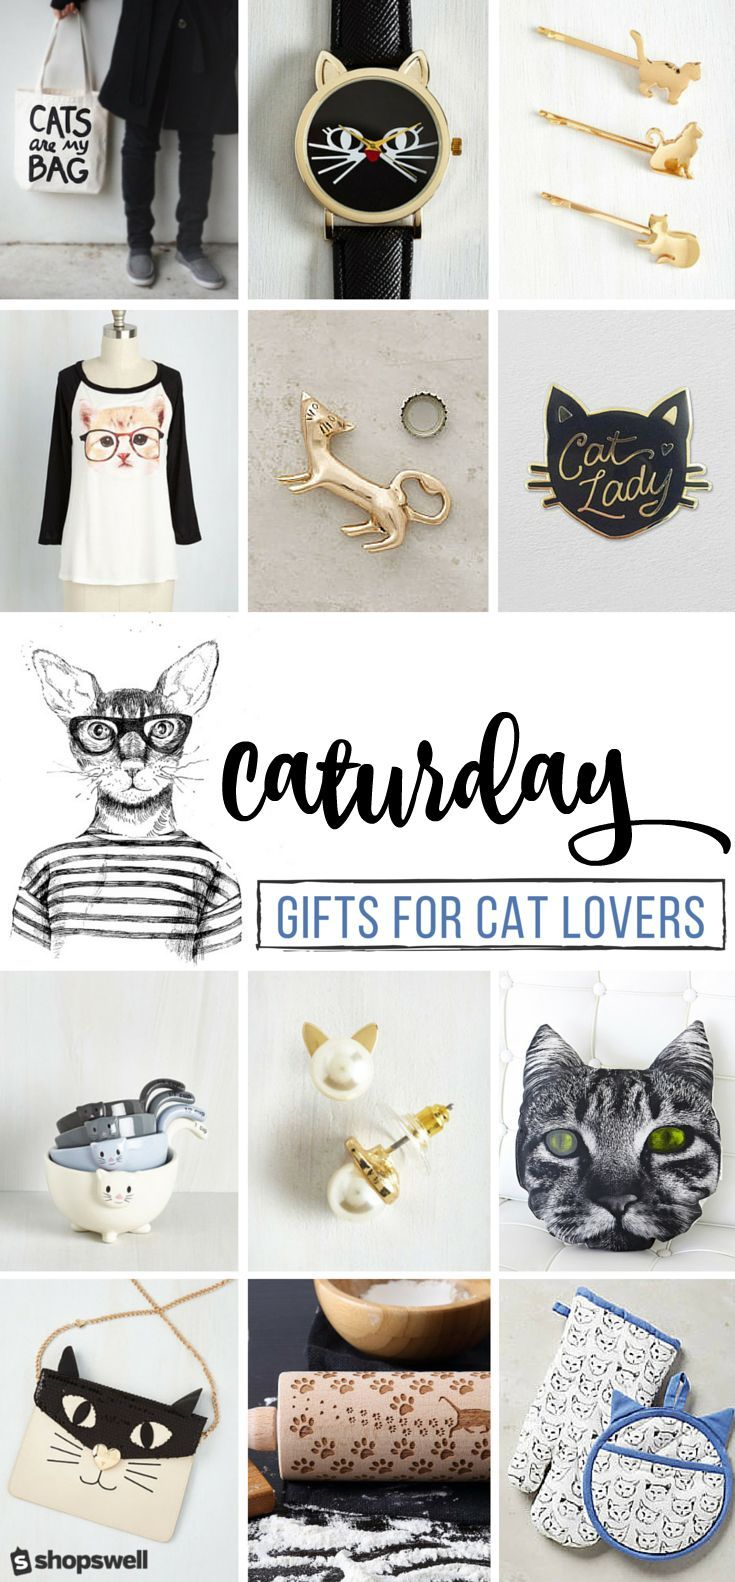 If you love cats as much as we do you totally get why Caturday is the very best day of the week. You're also going to fall in love with these fun, quirky gifts that only a cat lover can truly understand.